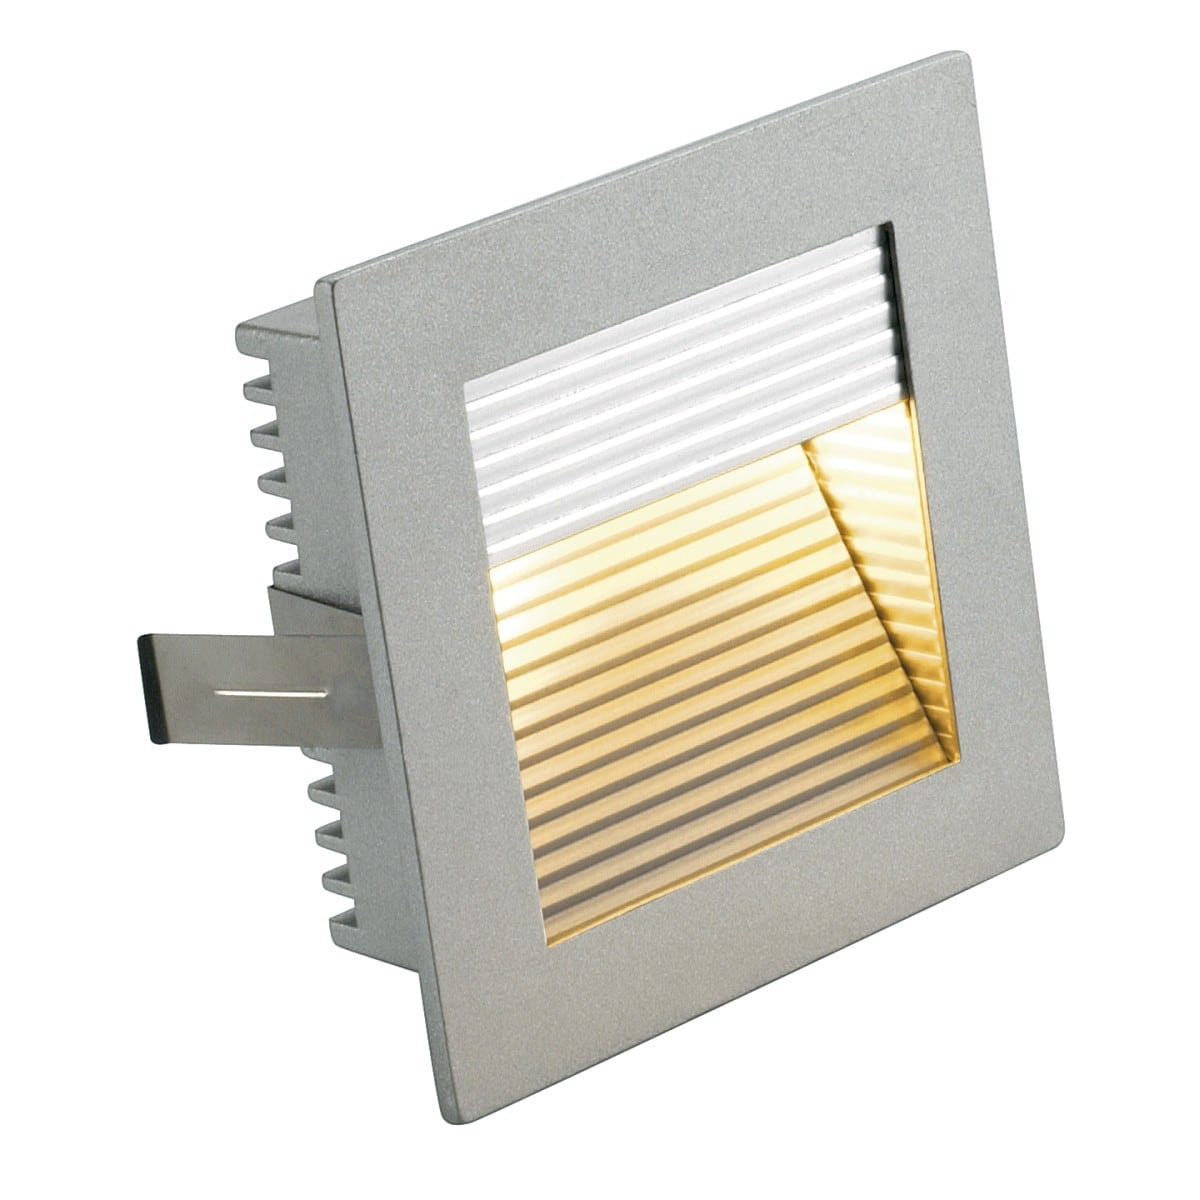 Recessed wall luminaire SLV FLAT FRAME CURVE 112772